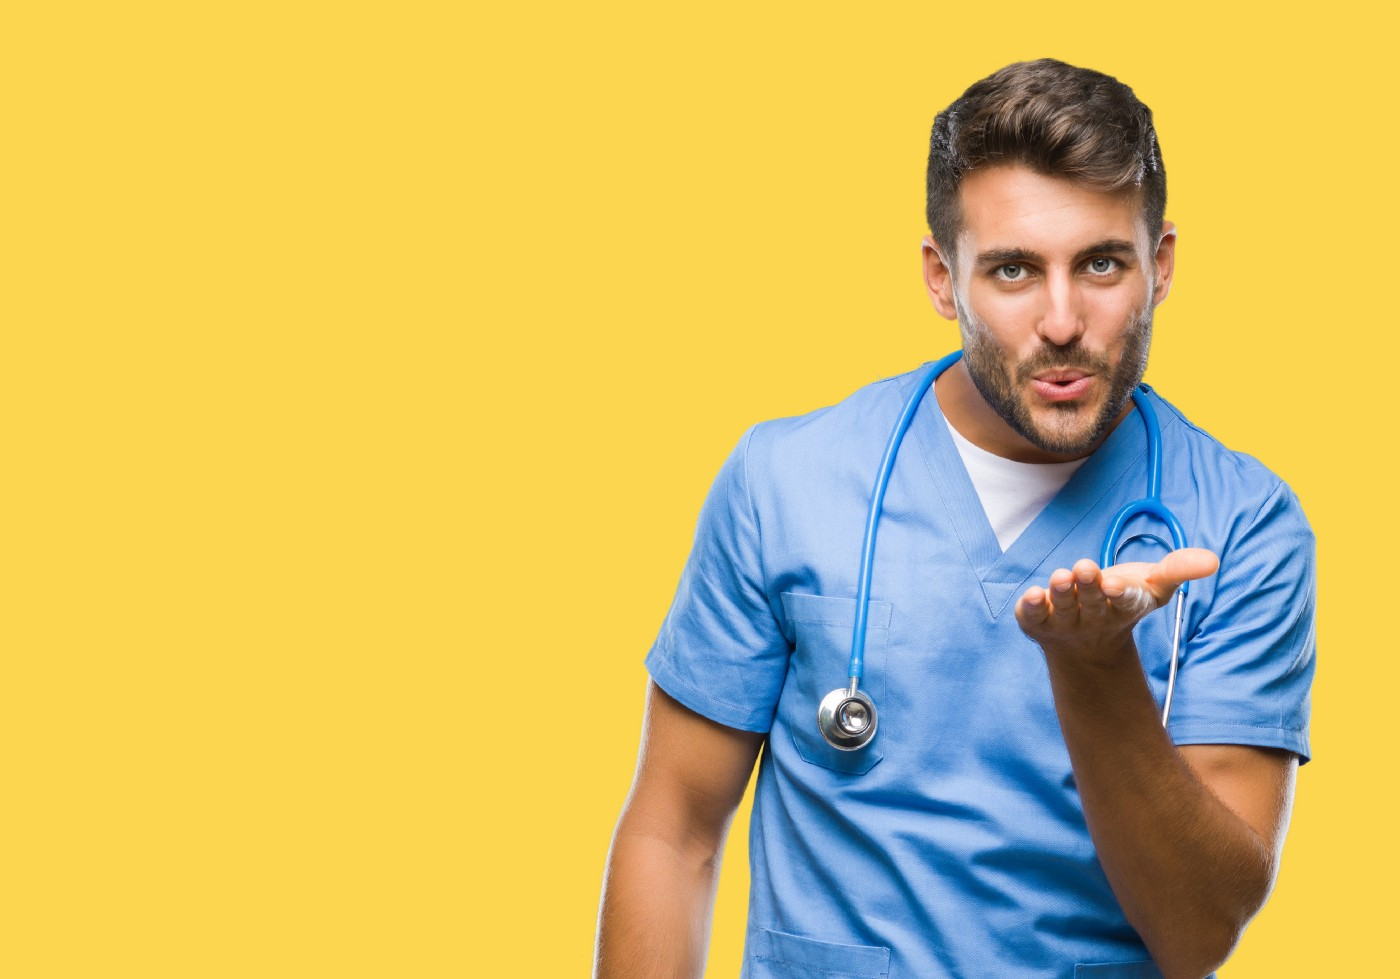 Young handsome doctor surgeon man over isolated background looking at the camera blowing a kiss with hand on air being lovely and sexy.